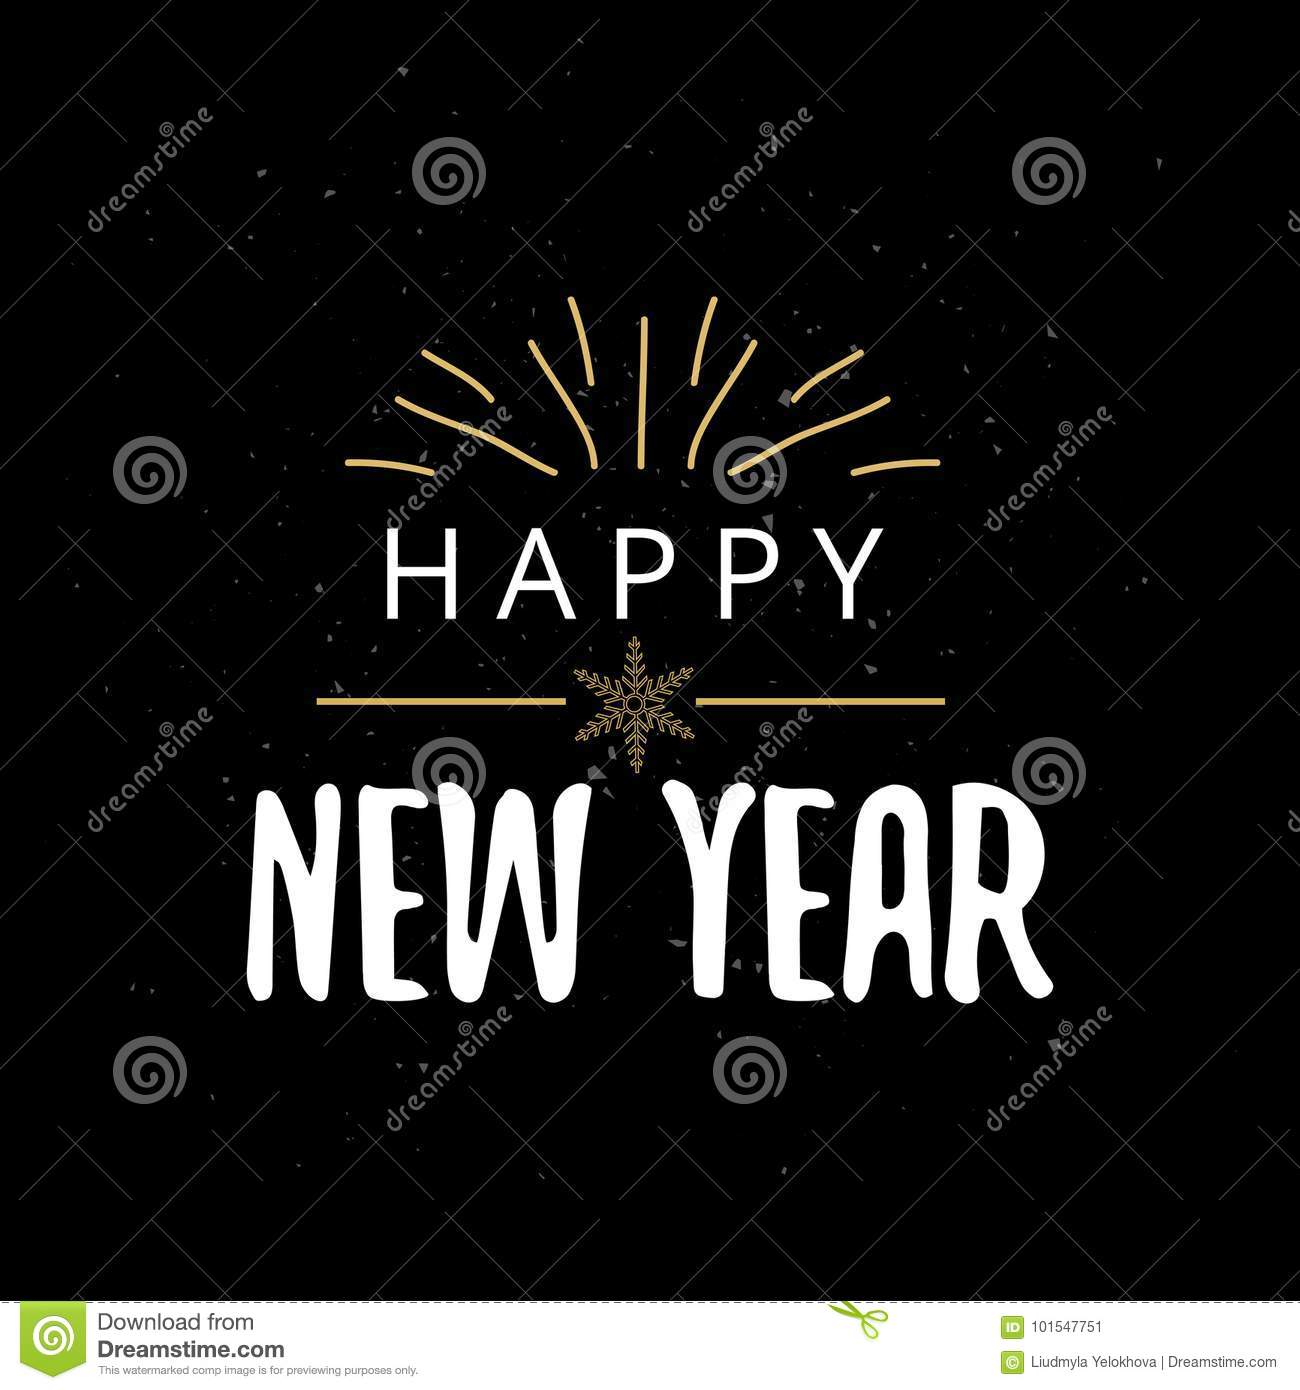 Happy New Year typography. Vector illustration